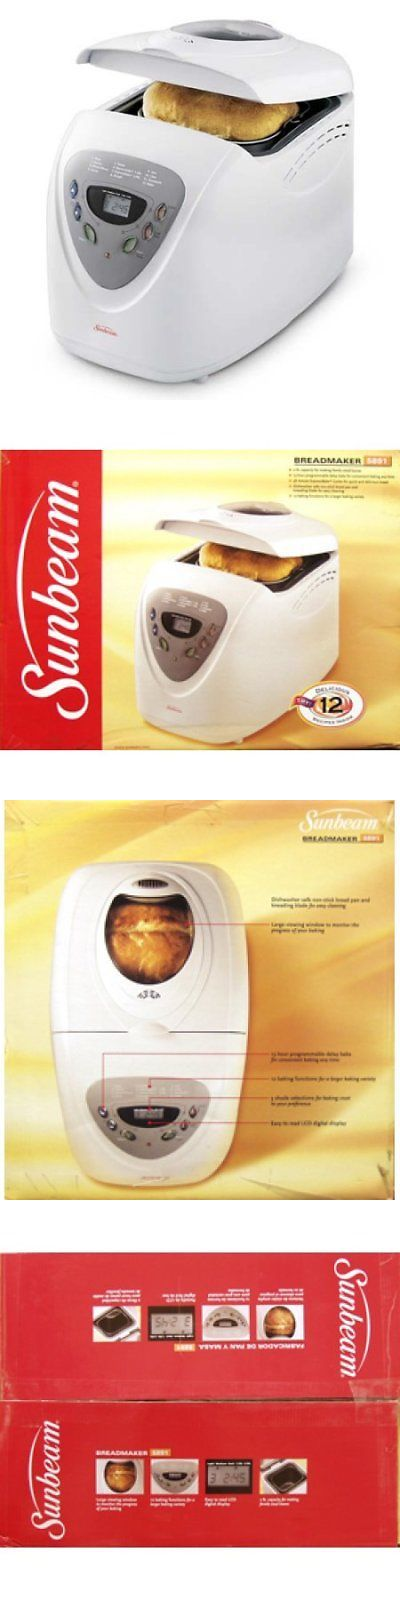 Sunbeam Programmable Breadmaker 5891 W Bread Machine Bread Maker Sunbeam